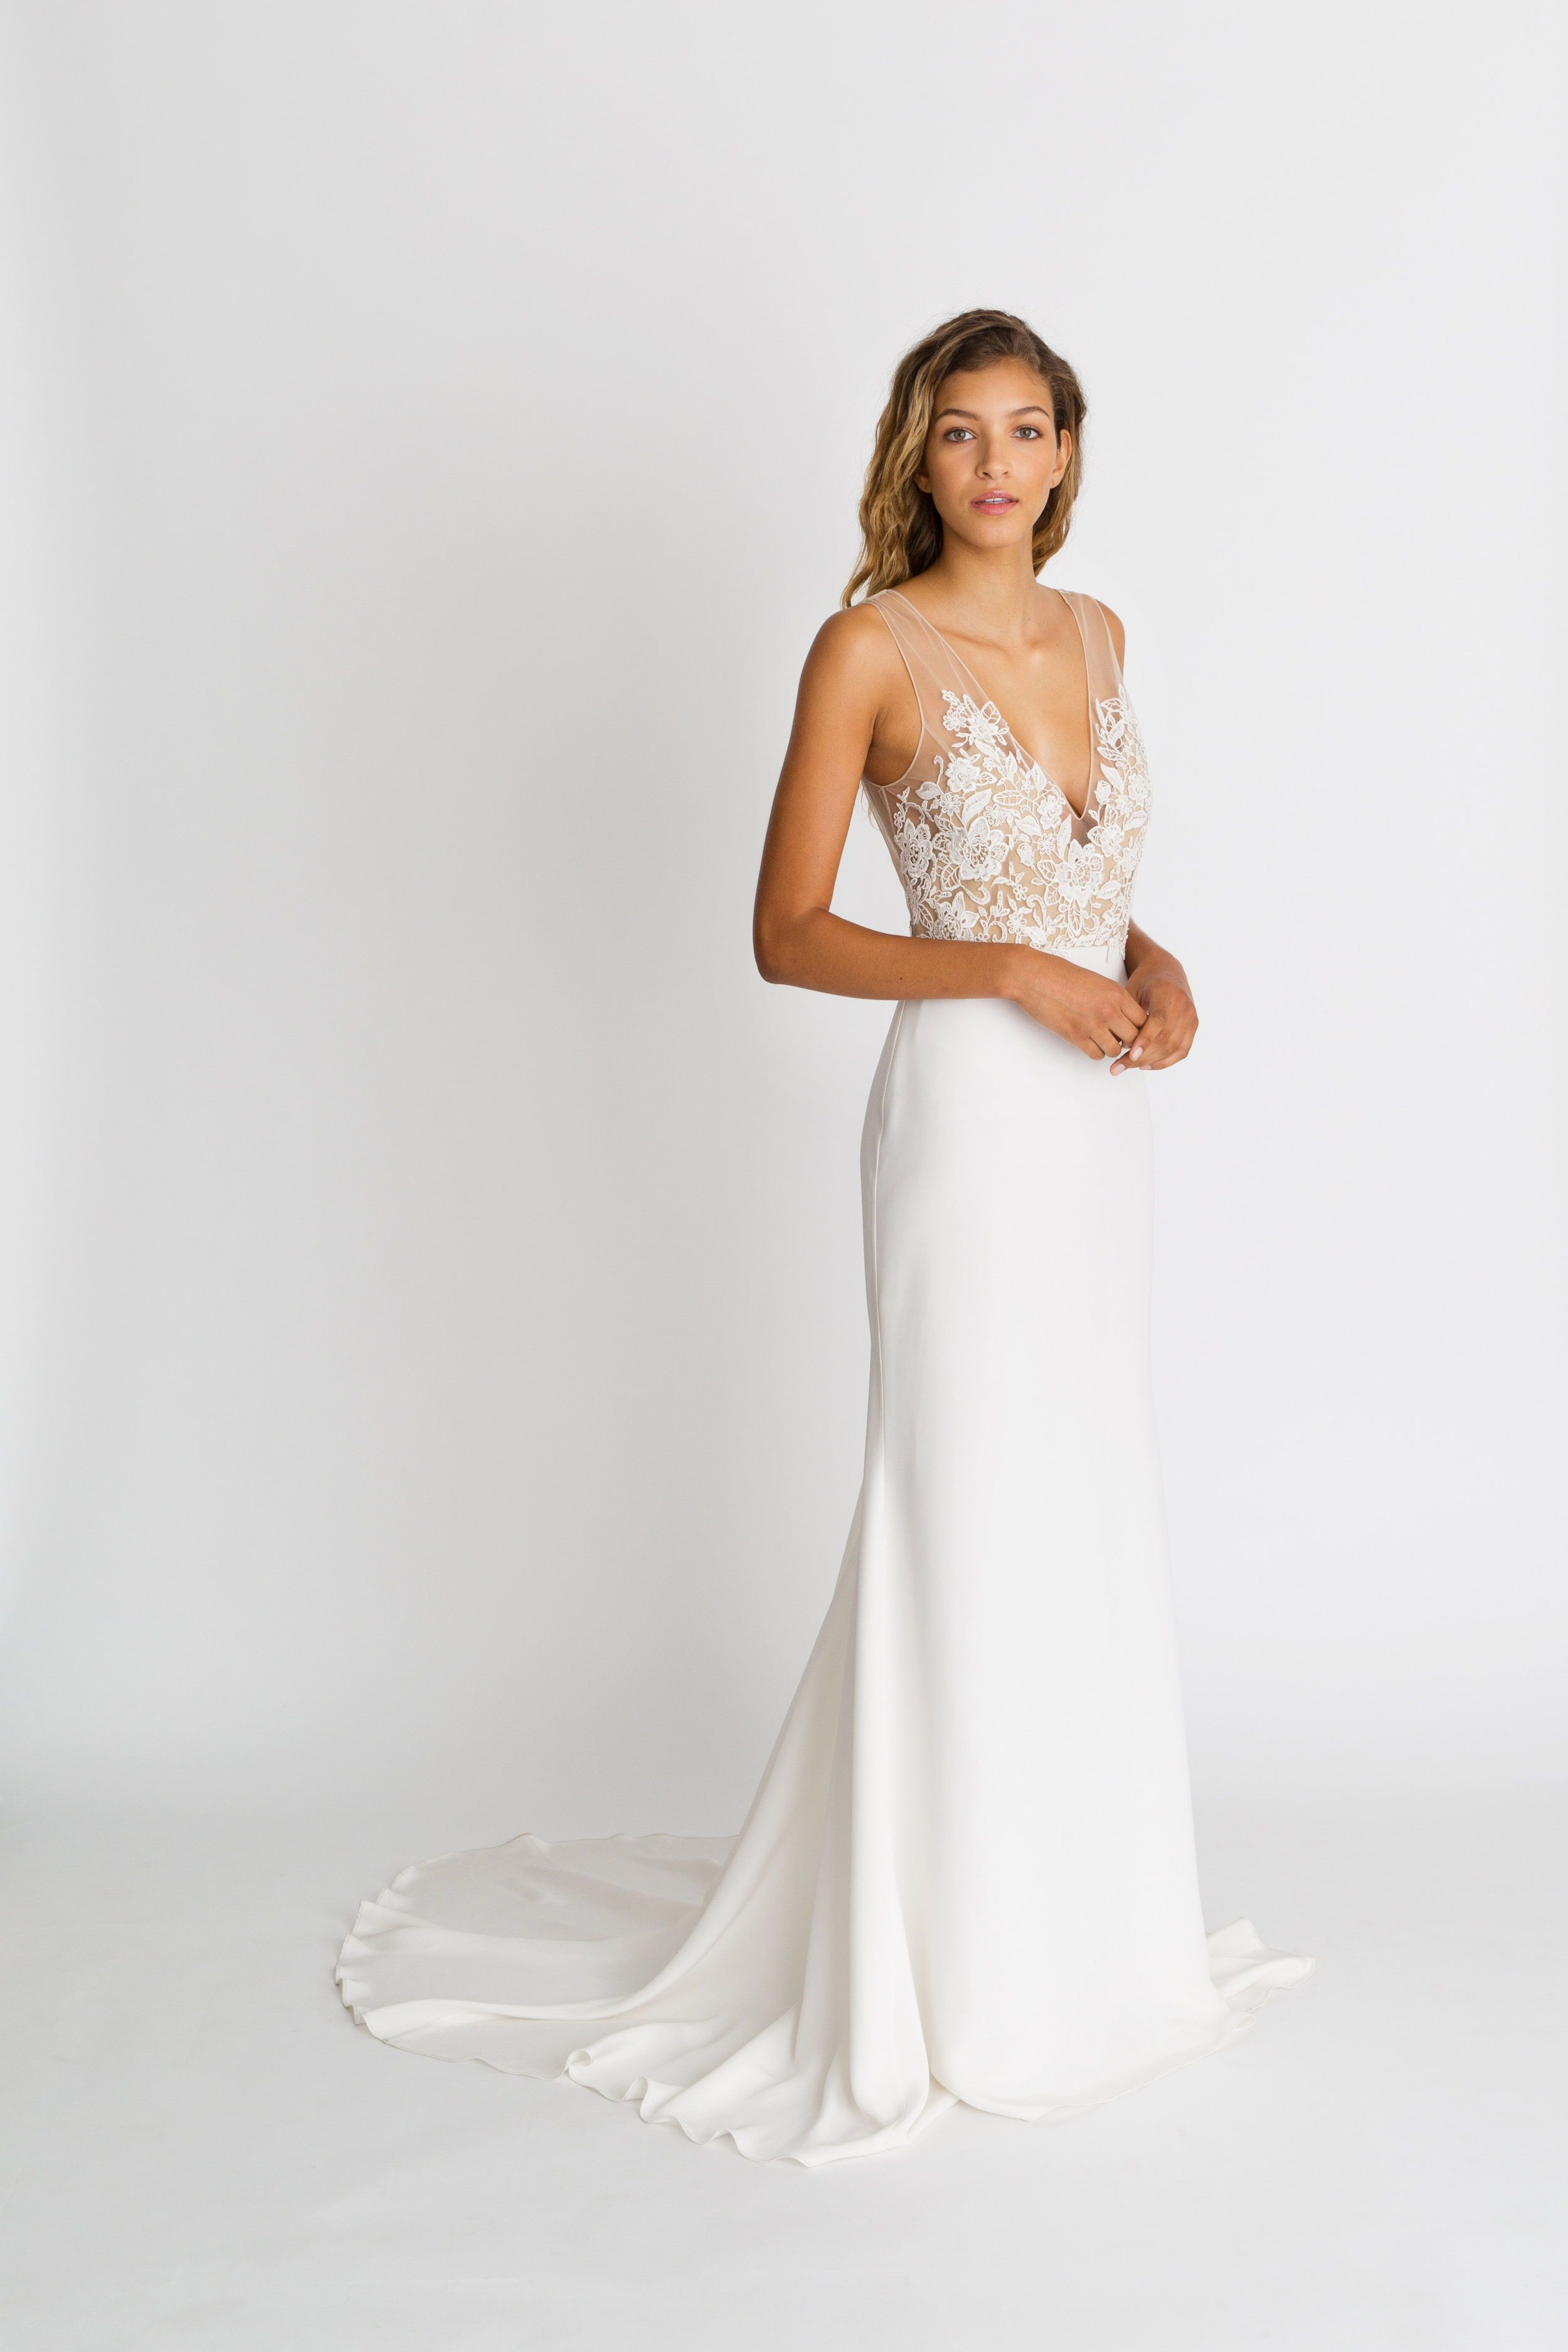 Lila By Alexandra Grecco Classics Collection The Lila Gown Is The Perfect Com Untraditional Wedding Dress Elegant Wedding Dress Dresses For Broad Shoulders